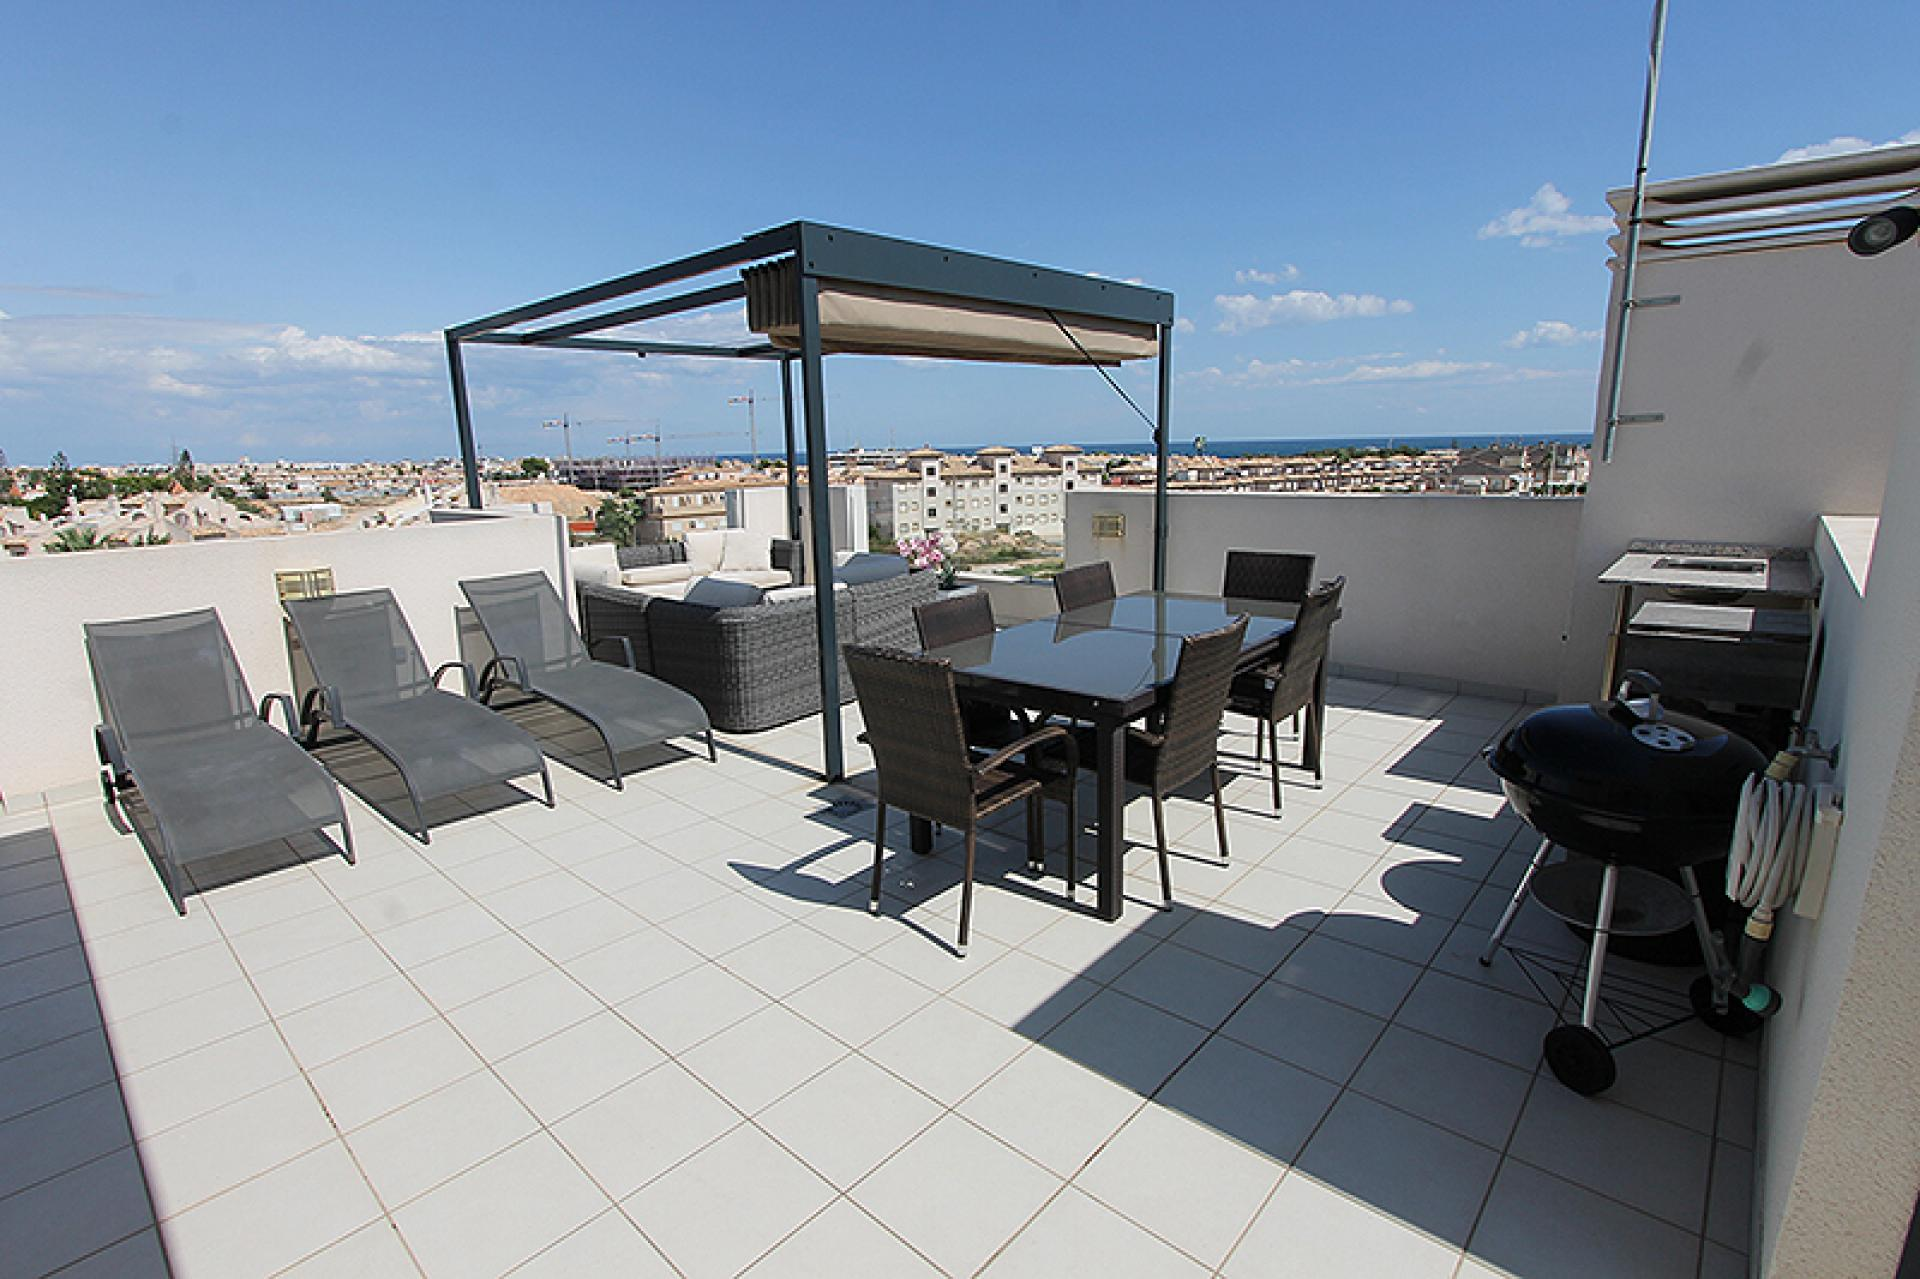 Penthouse in La Zenia (Alicante)